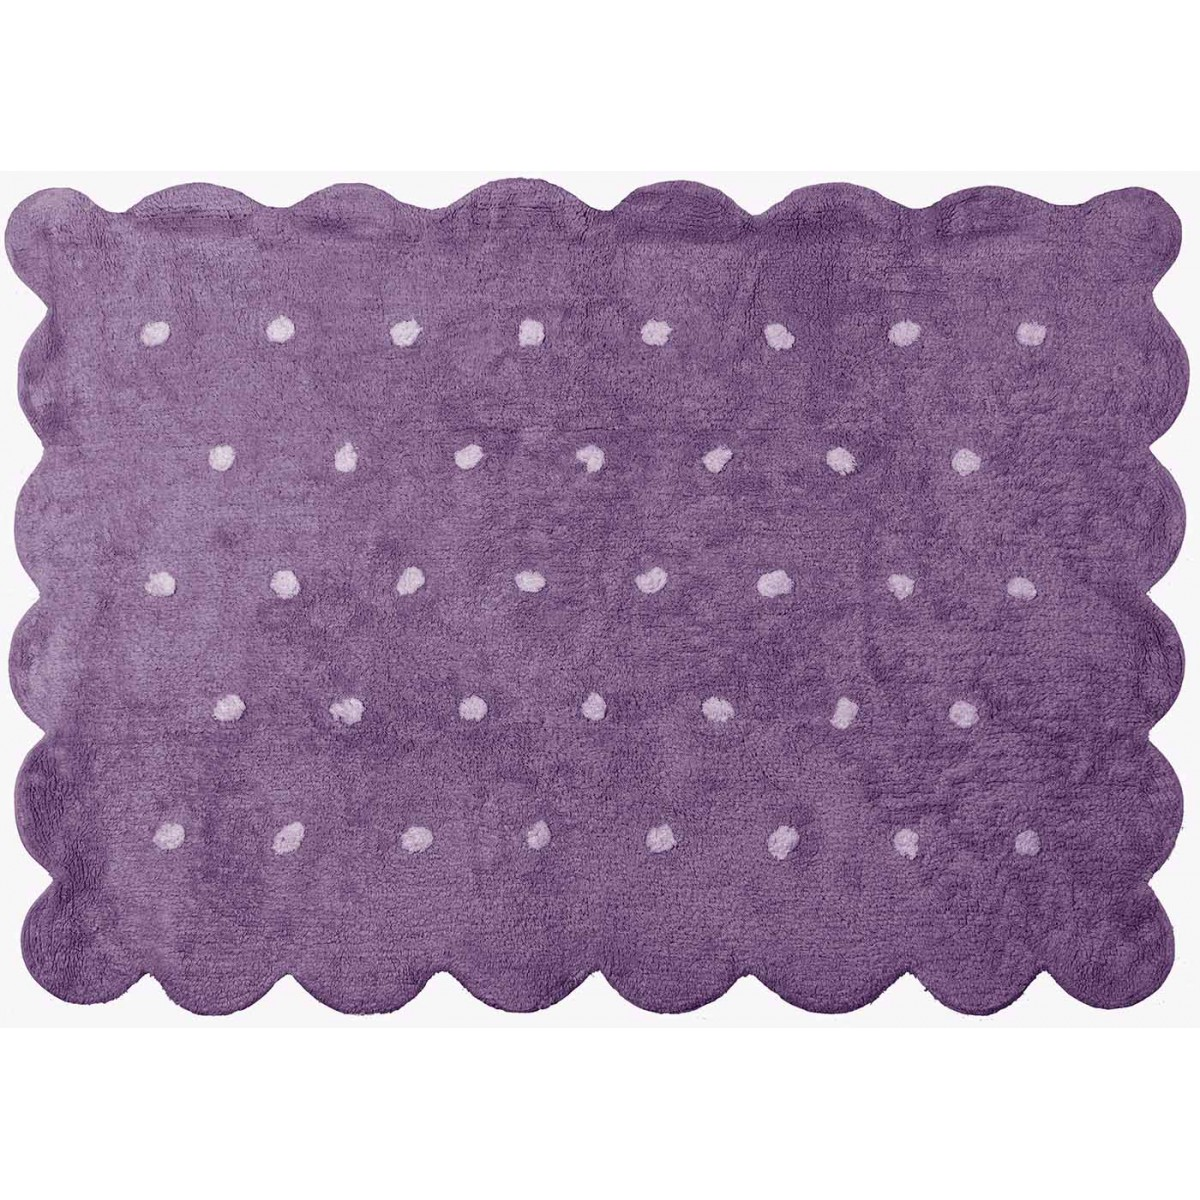 tapis rond mauve simple tapis rond snowflake flocon de with tapis rond mauve tapis violet. Black Bedroom Furniture Sets. Home Design Ideas